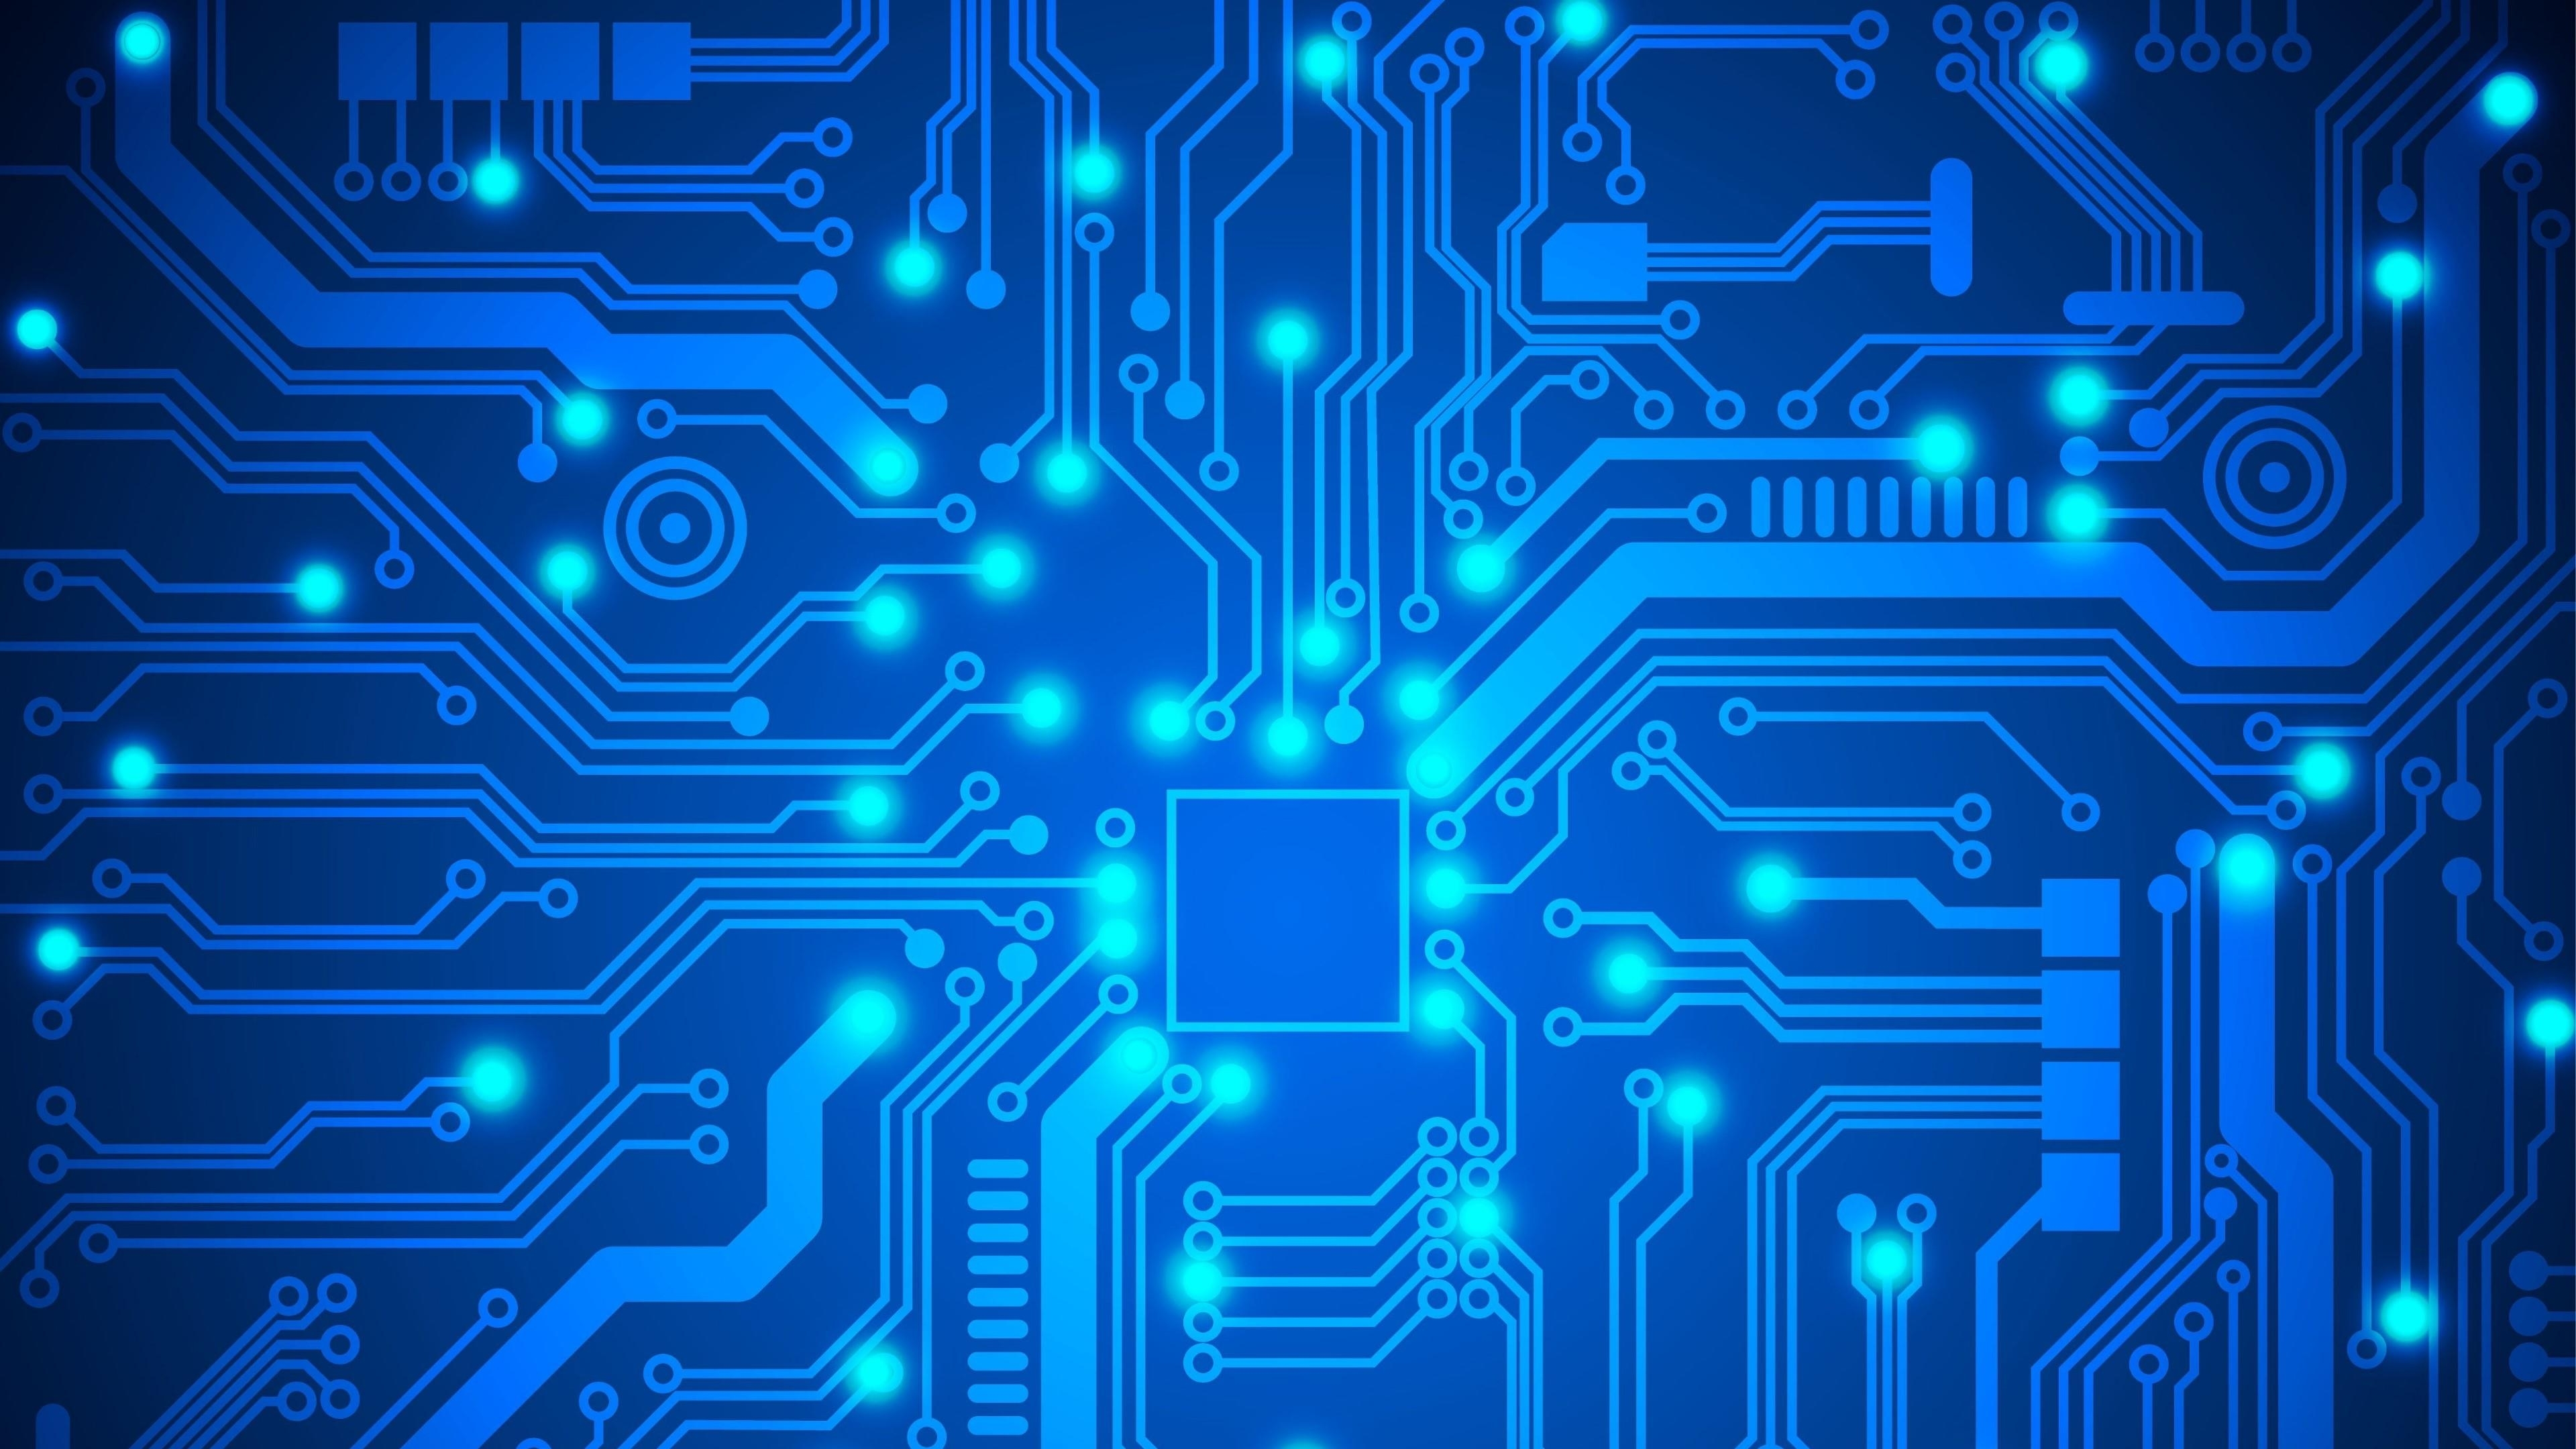 printed circuit board (pcb) wallpaper | wallpaper studio 10 | tens